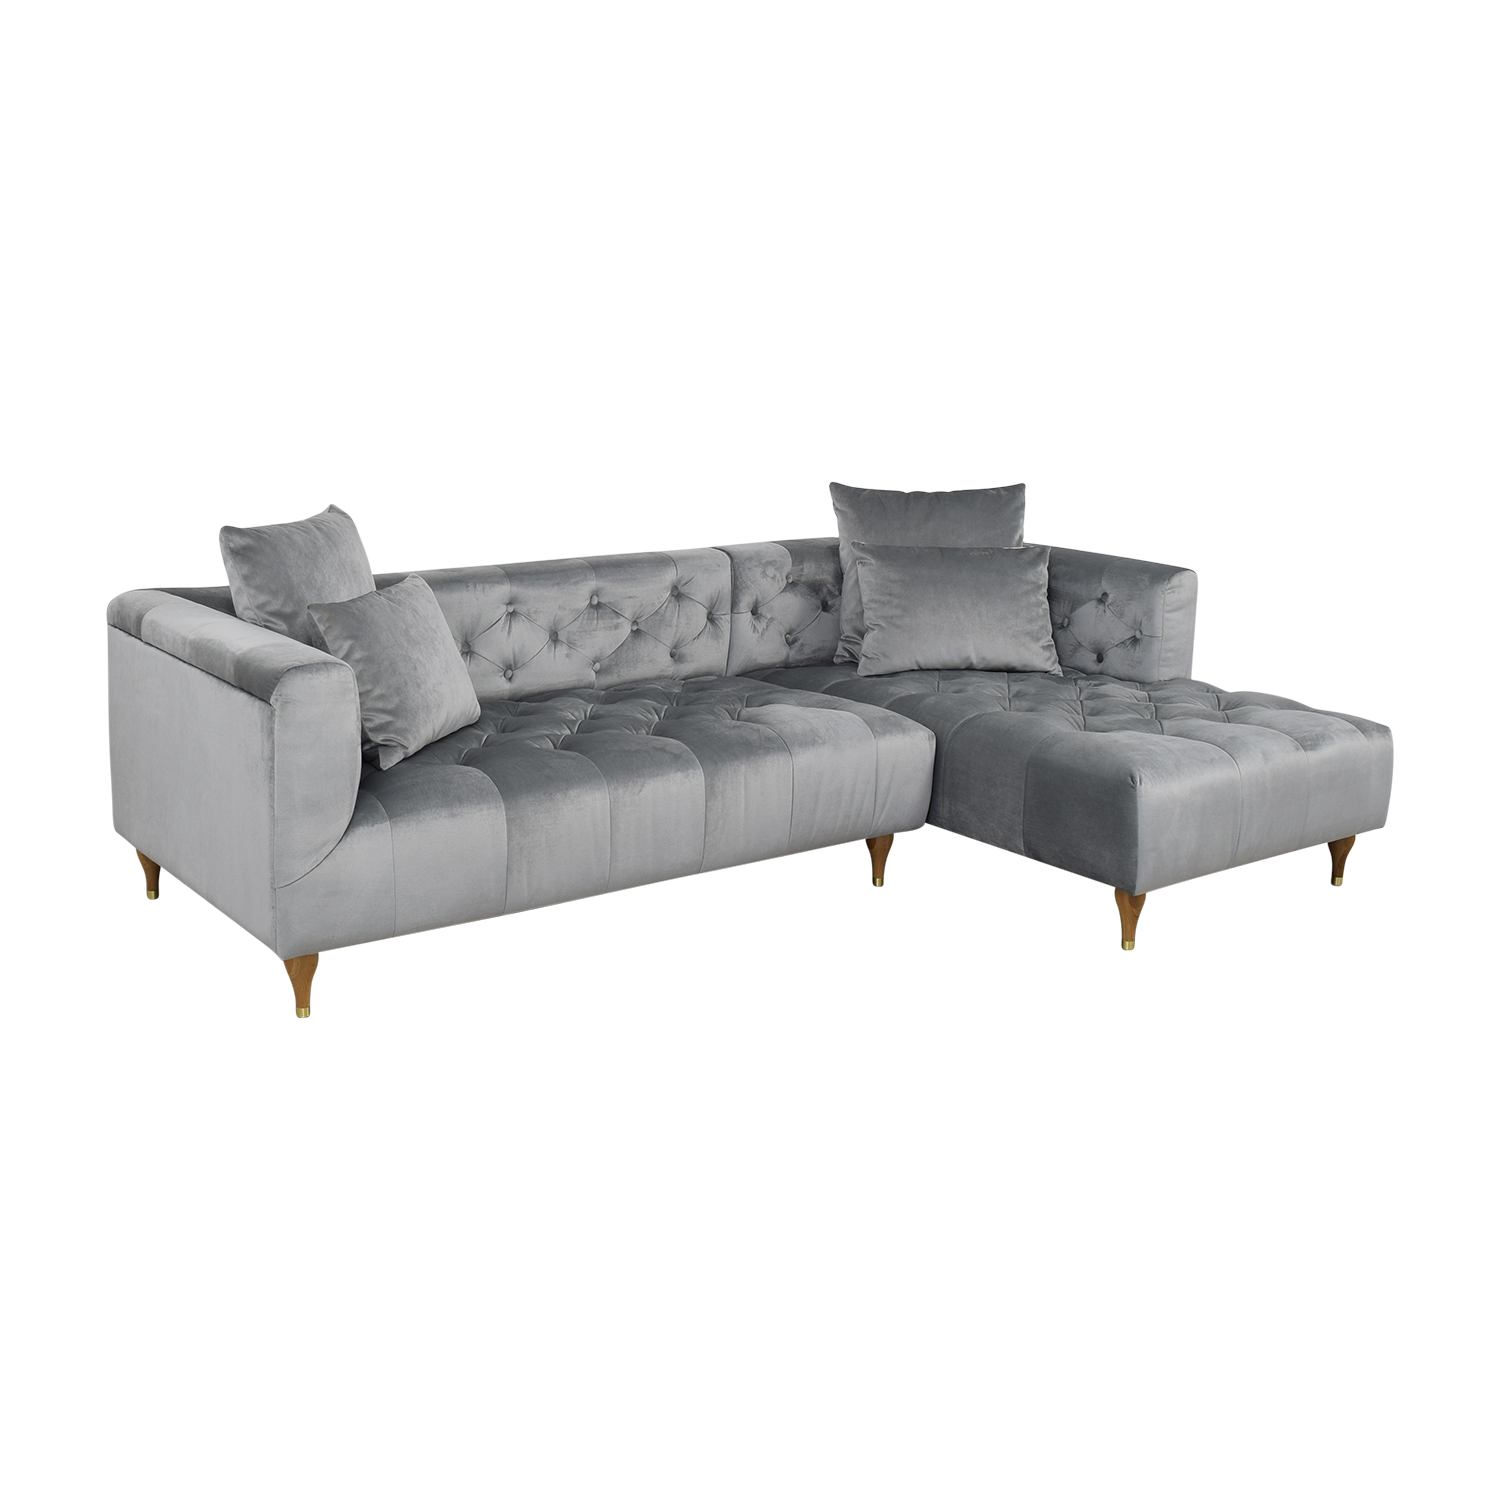 Interior Define Ms. Chesterfield Light Grey Tufted Right Chaise Sectional Sofas